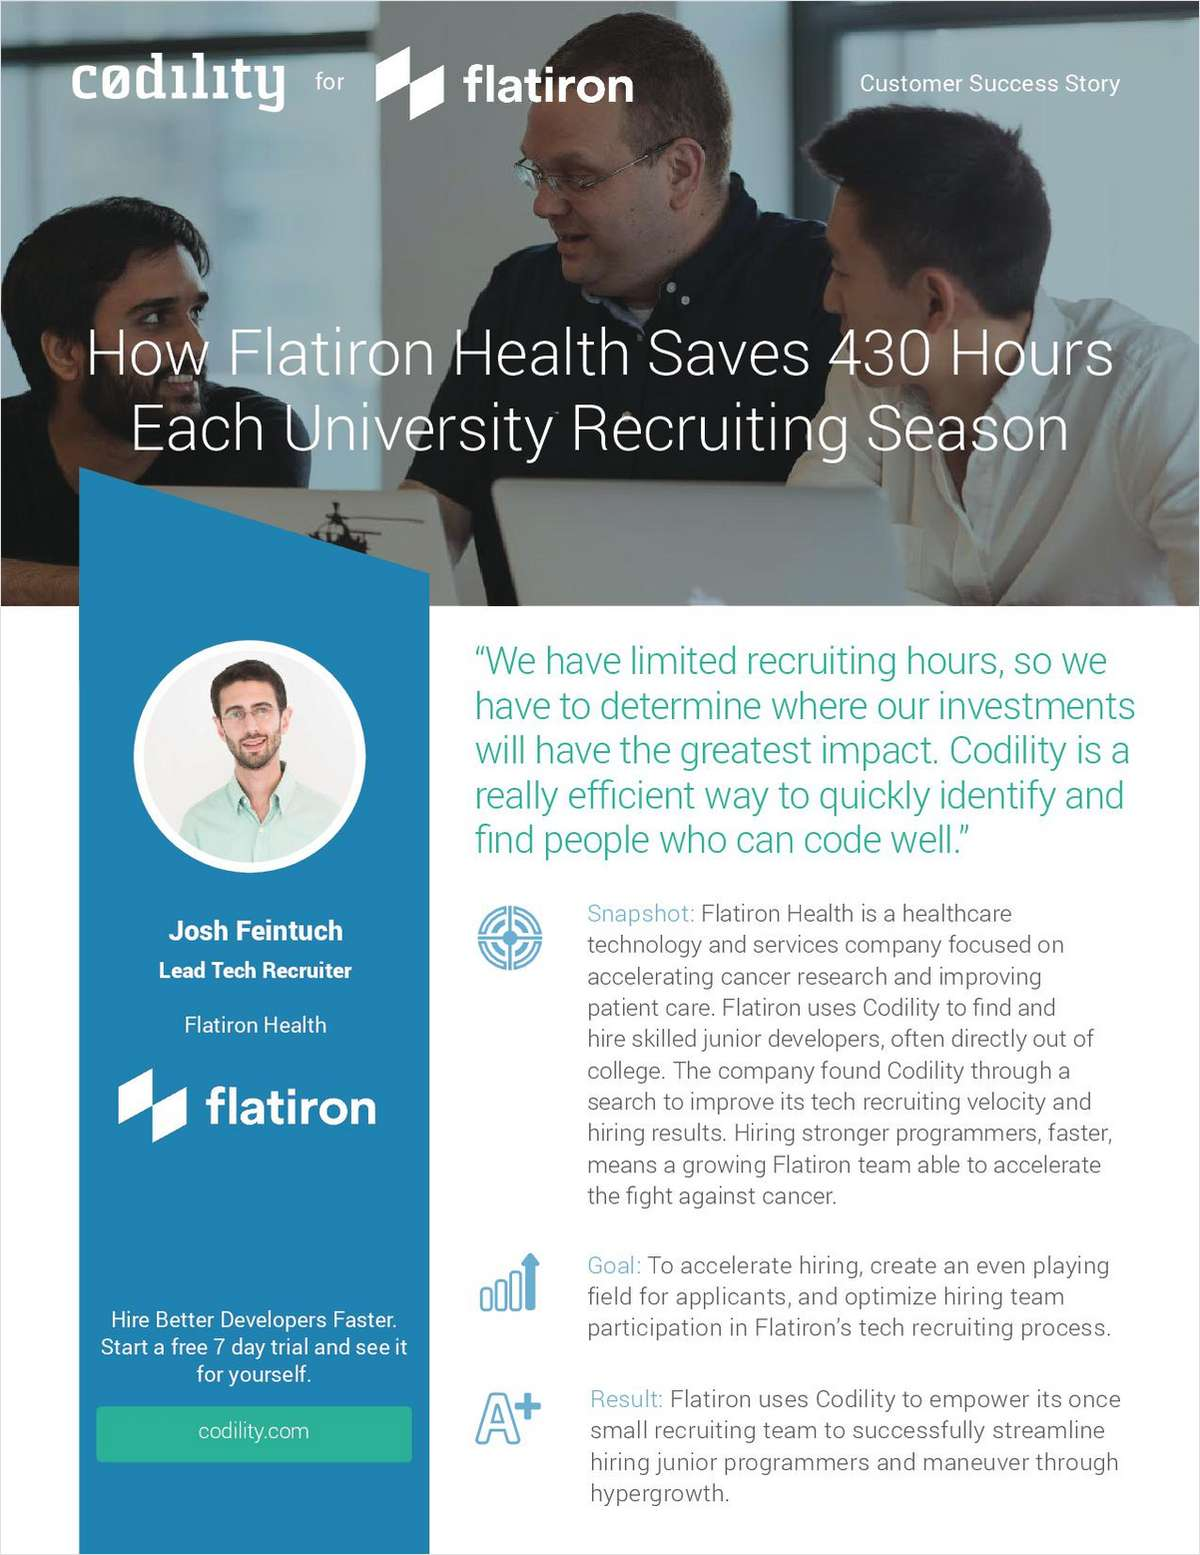 How Flatiron Health Saves 430 Hours Each University Recruiting Season